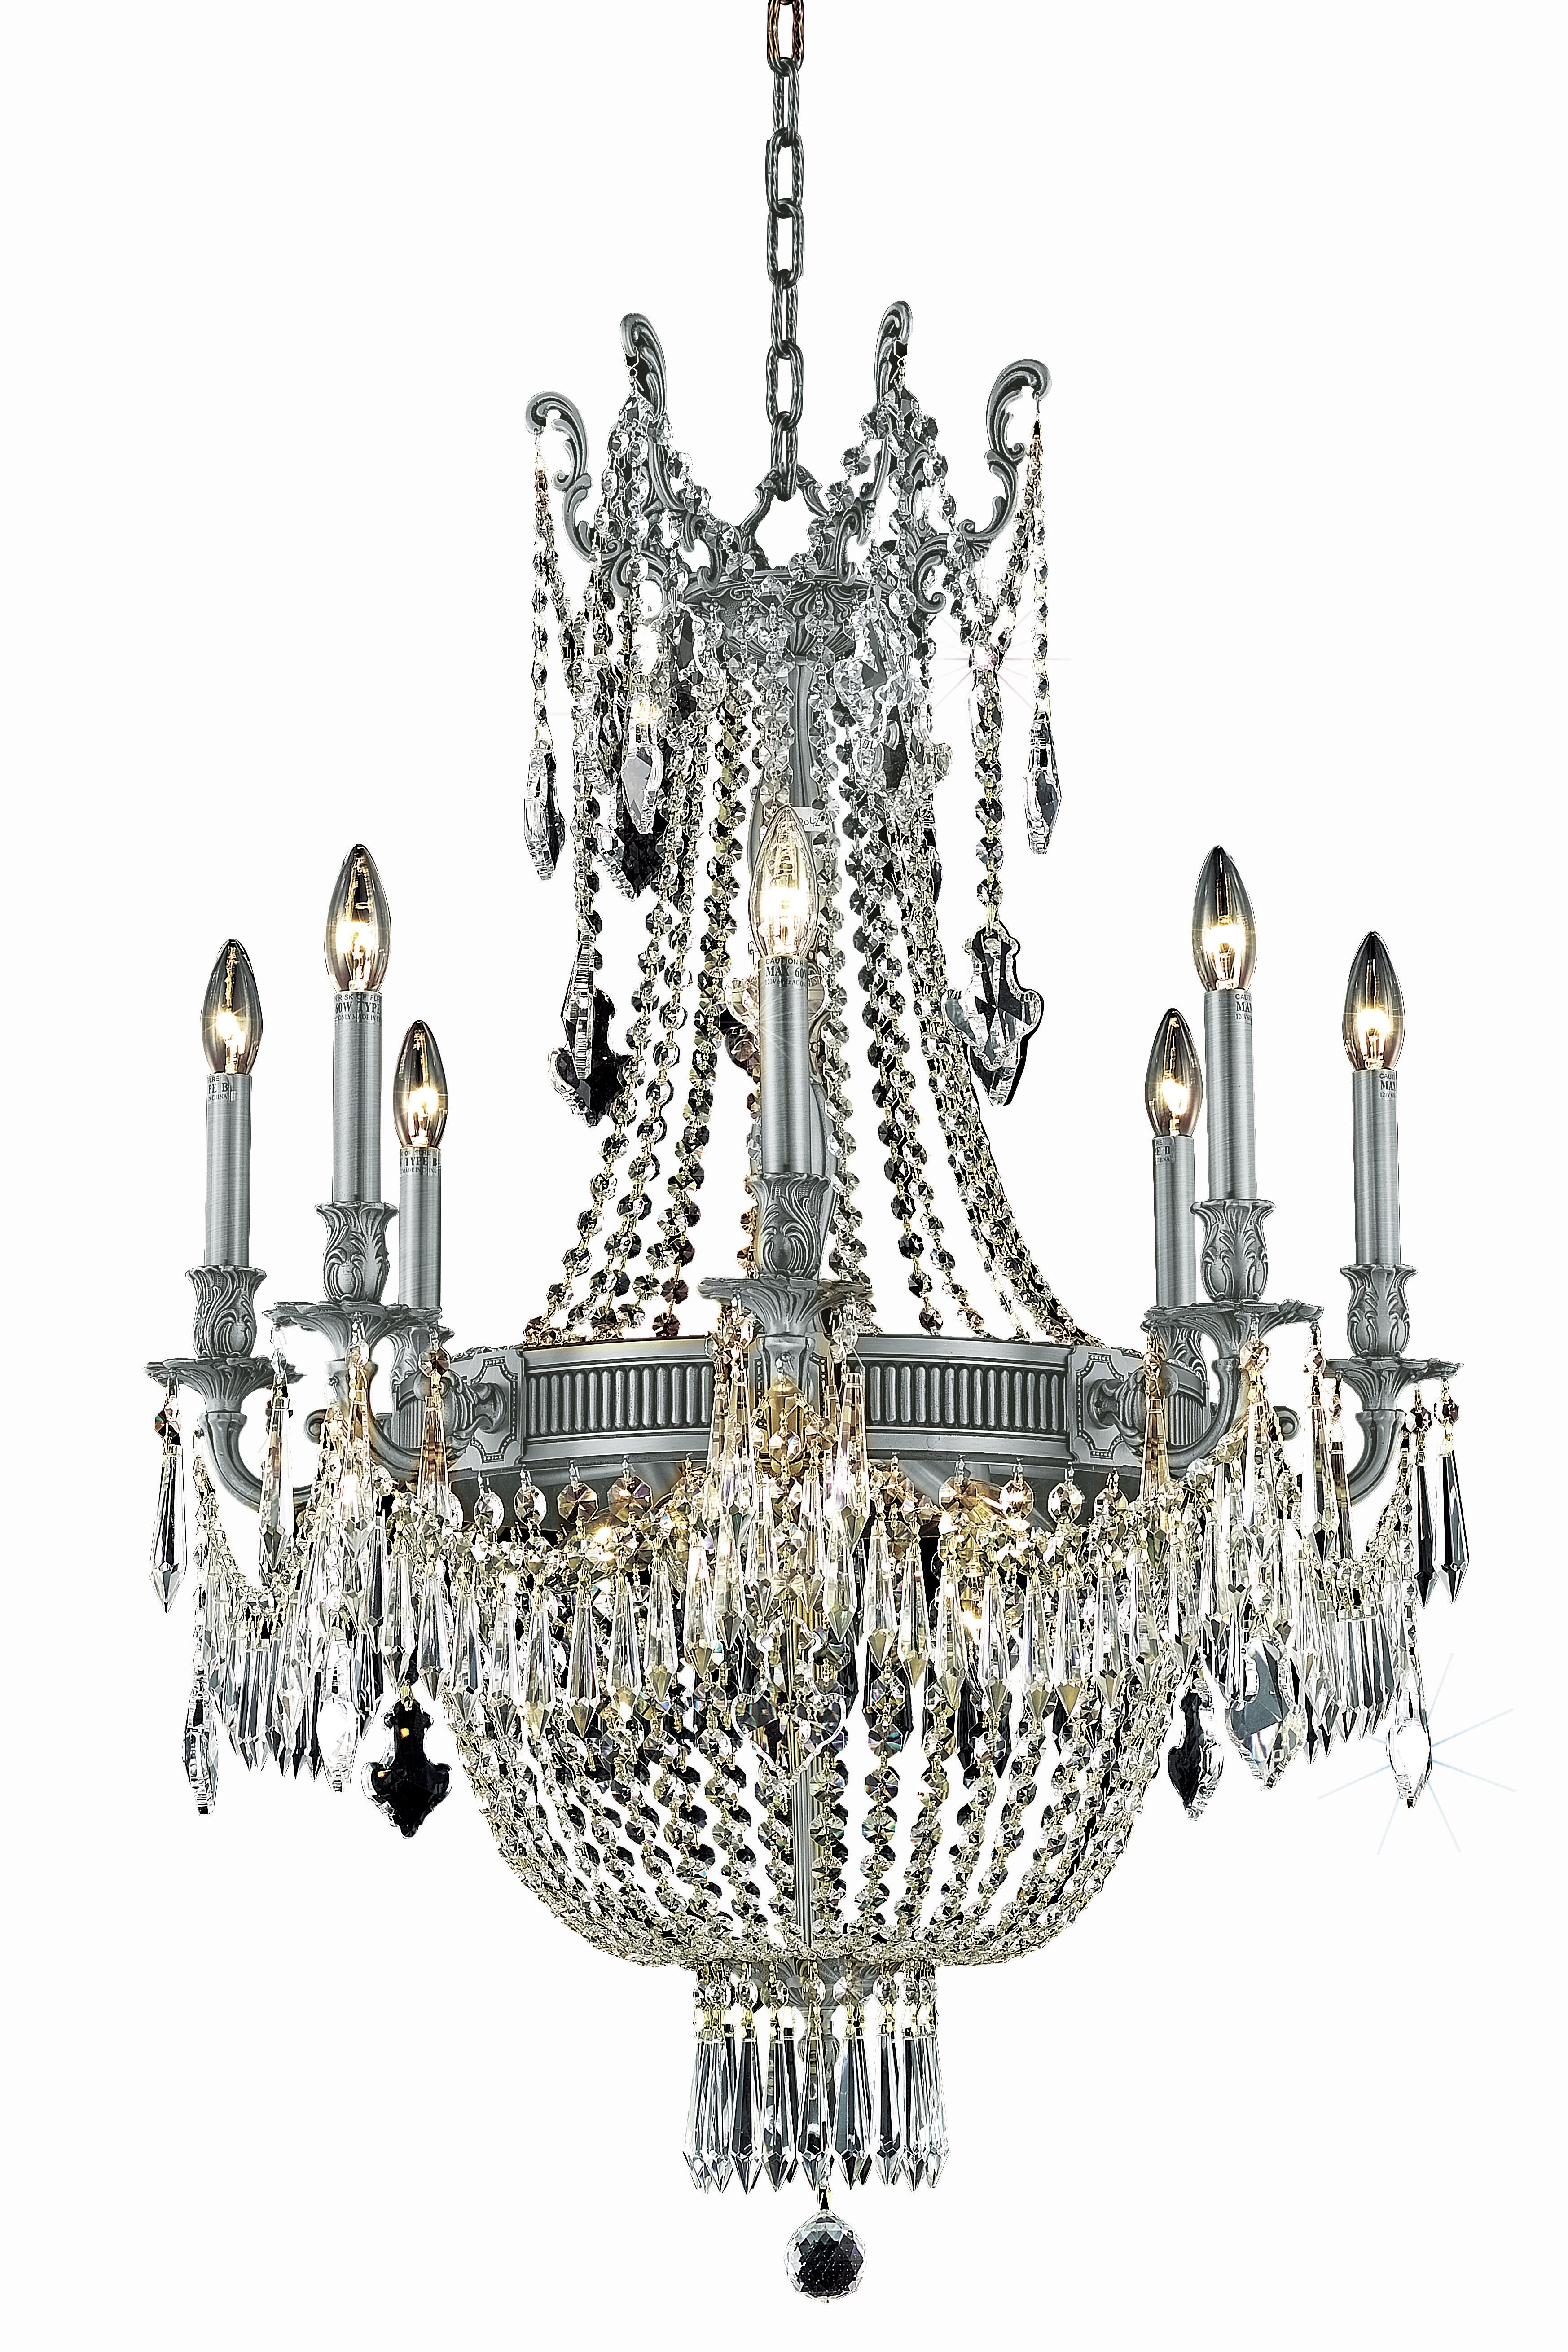 Astoria Grand Ursula 12 Light Candle Style Empire Chandelier With Crystal Accents Wayfair